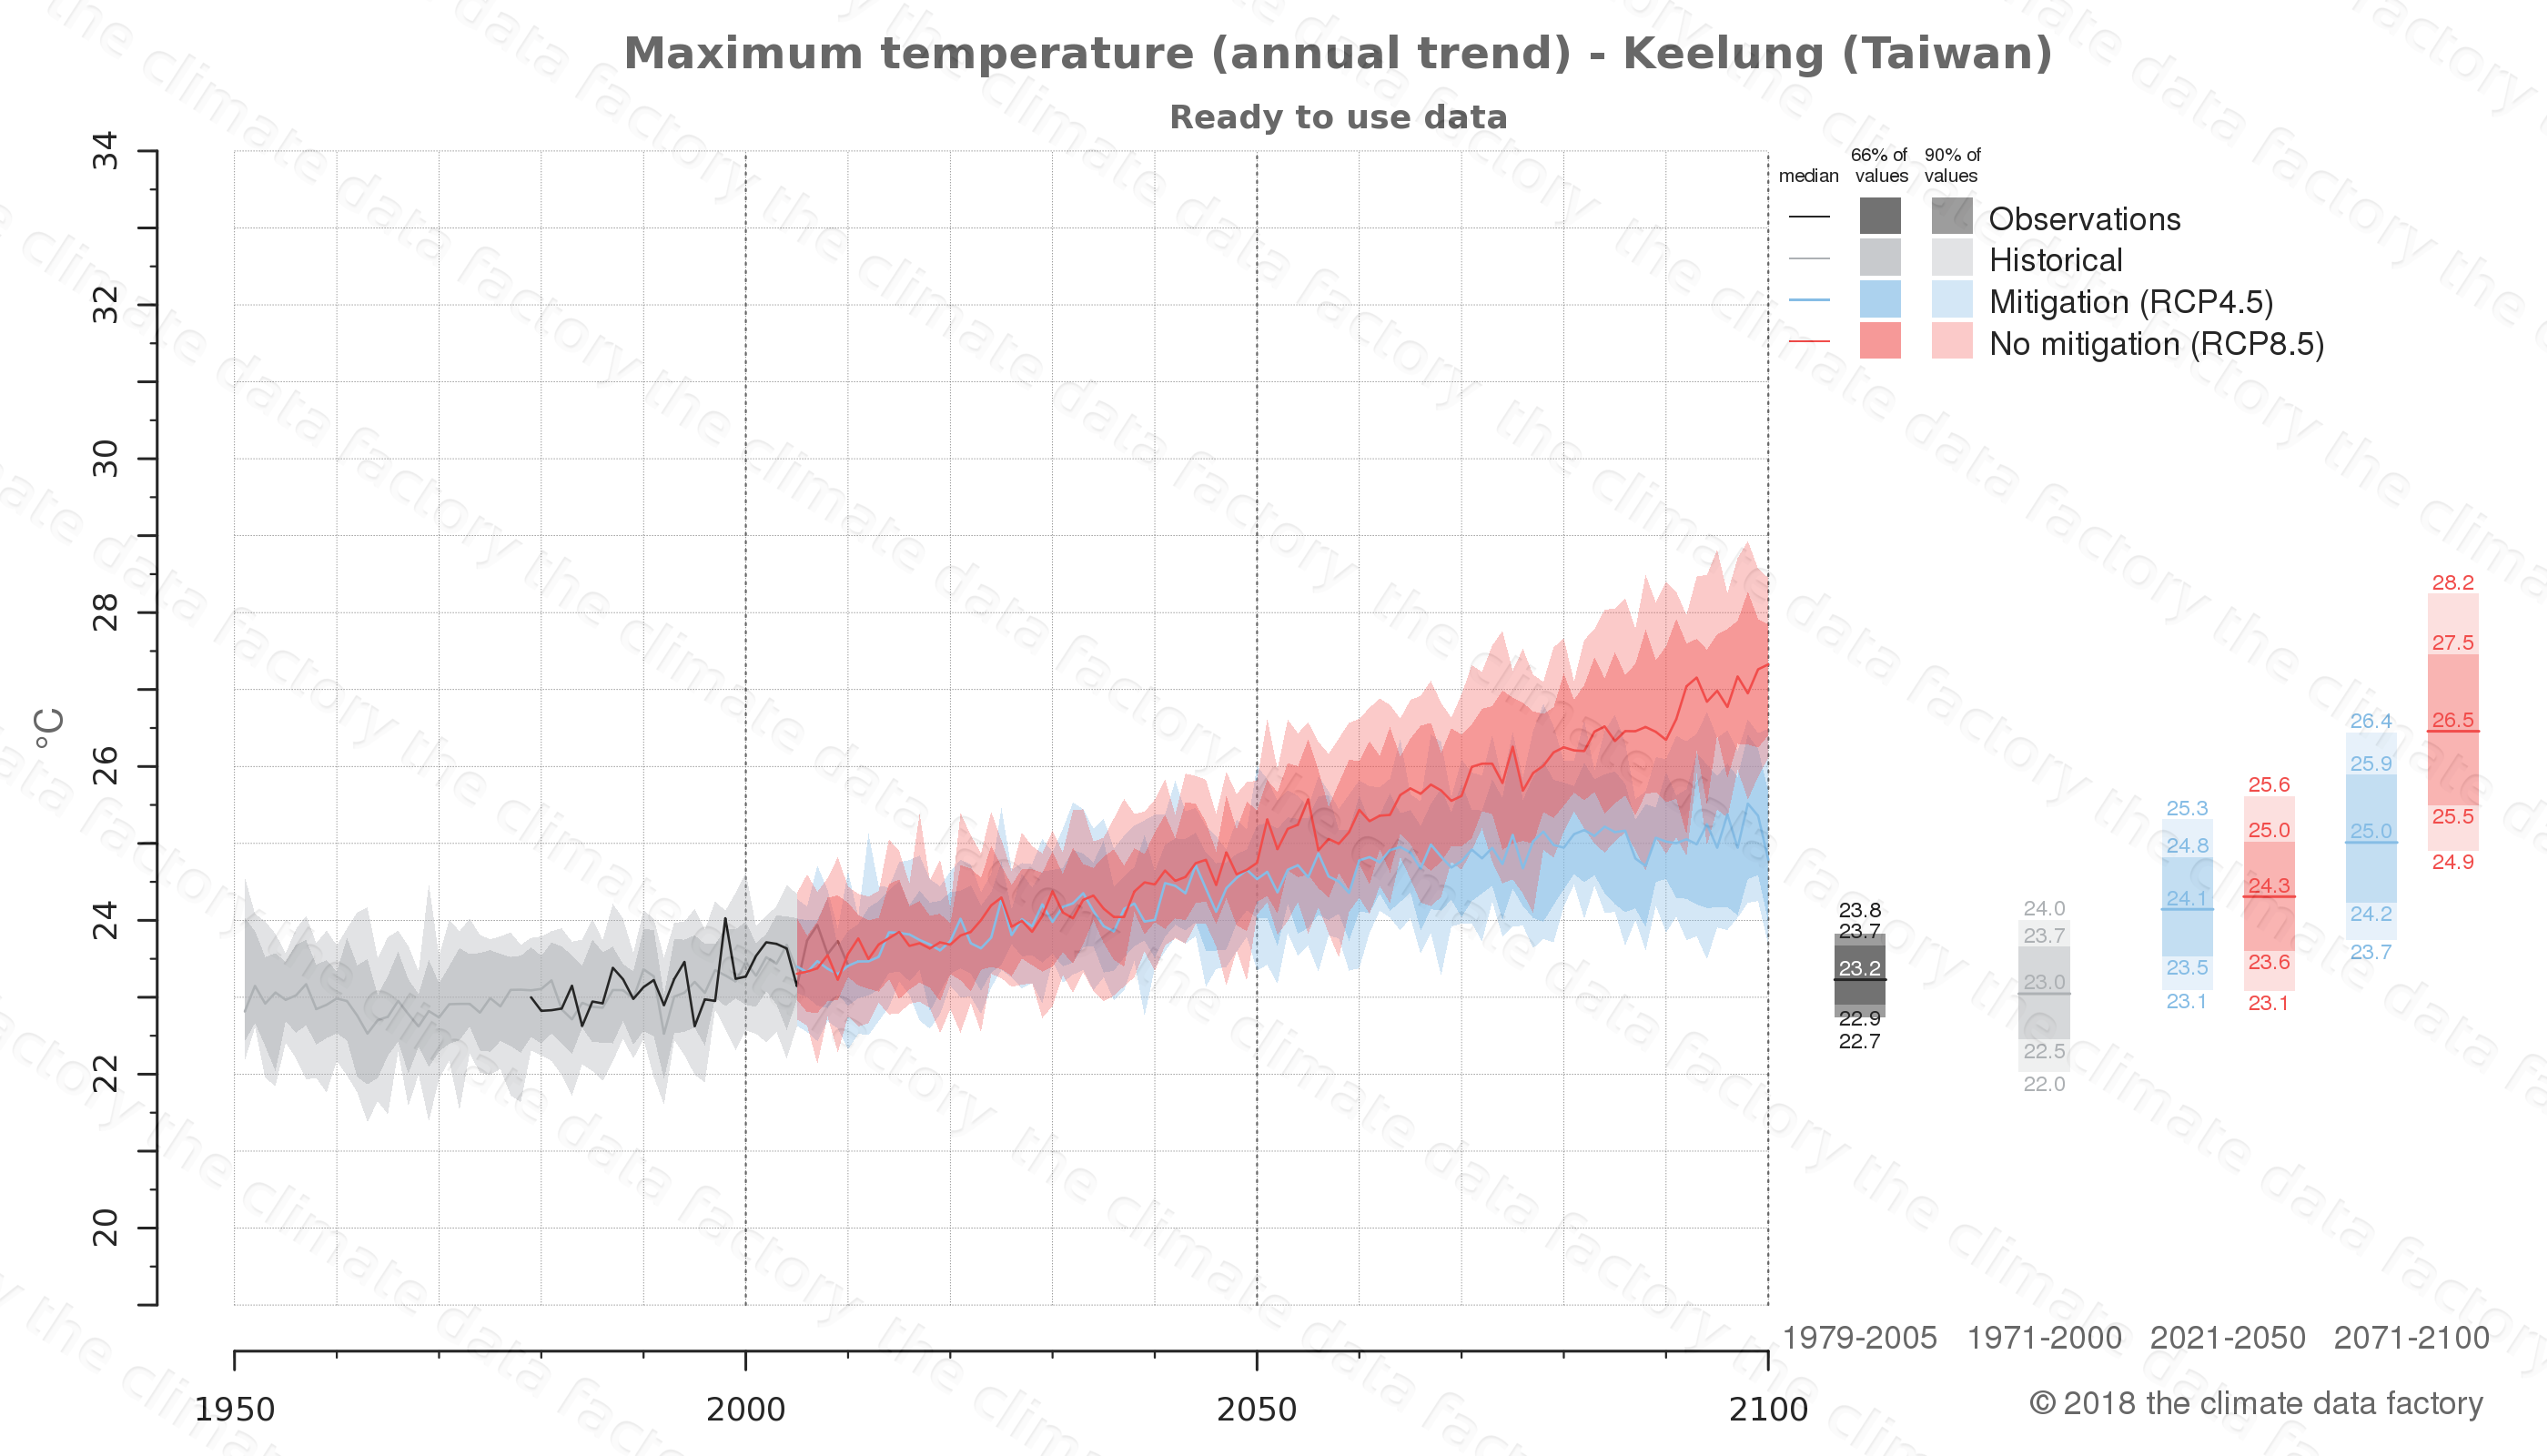 climate change data policy adaptation climate graph city data maximum-temperature keelung taiwan